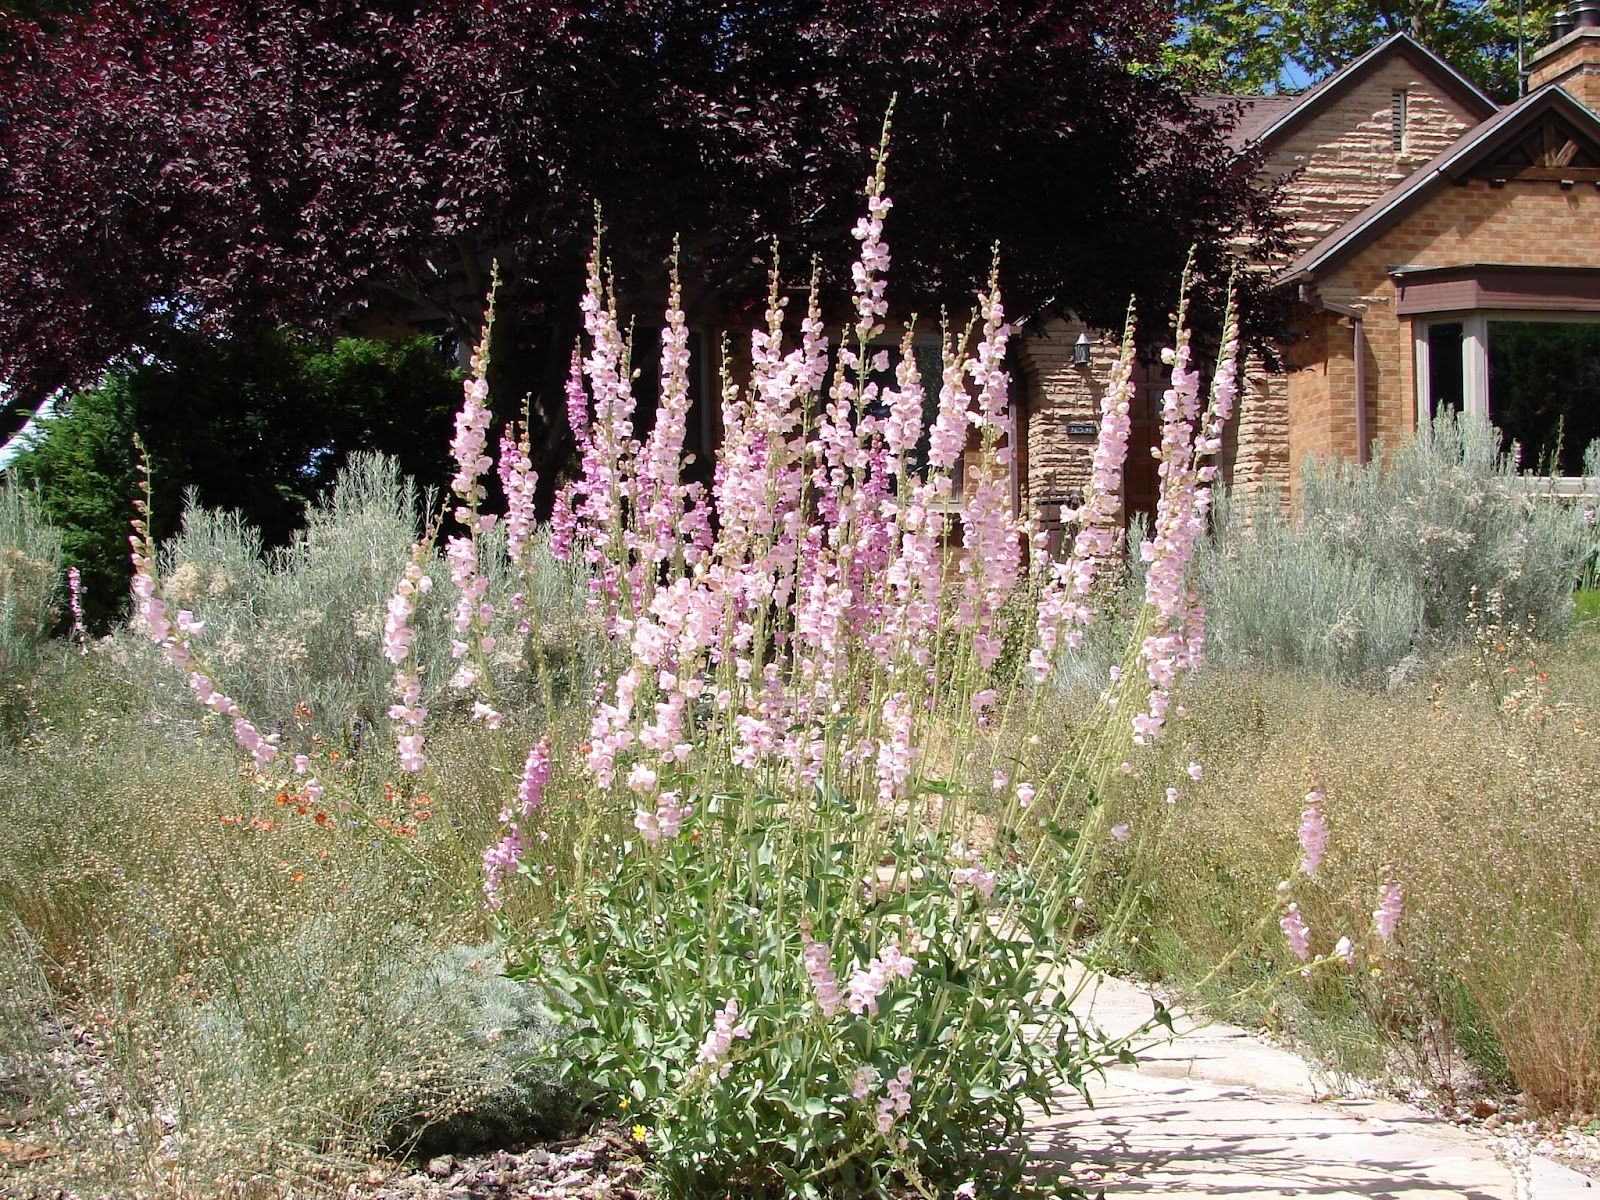 New utah gardener waterwise plants for utah this tall perennial is penstemon palmeri or palmers penstemon it is also a utah native and needs no extra water it grows to be about 5 feet tall mightylinksfo